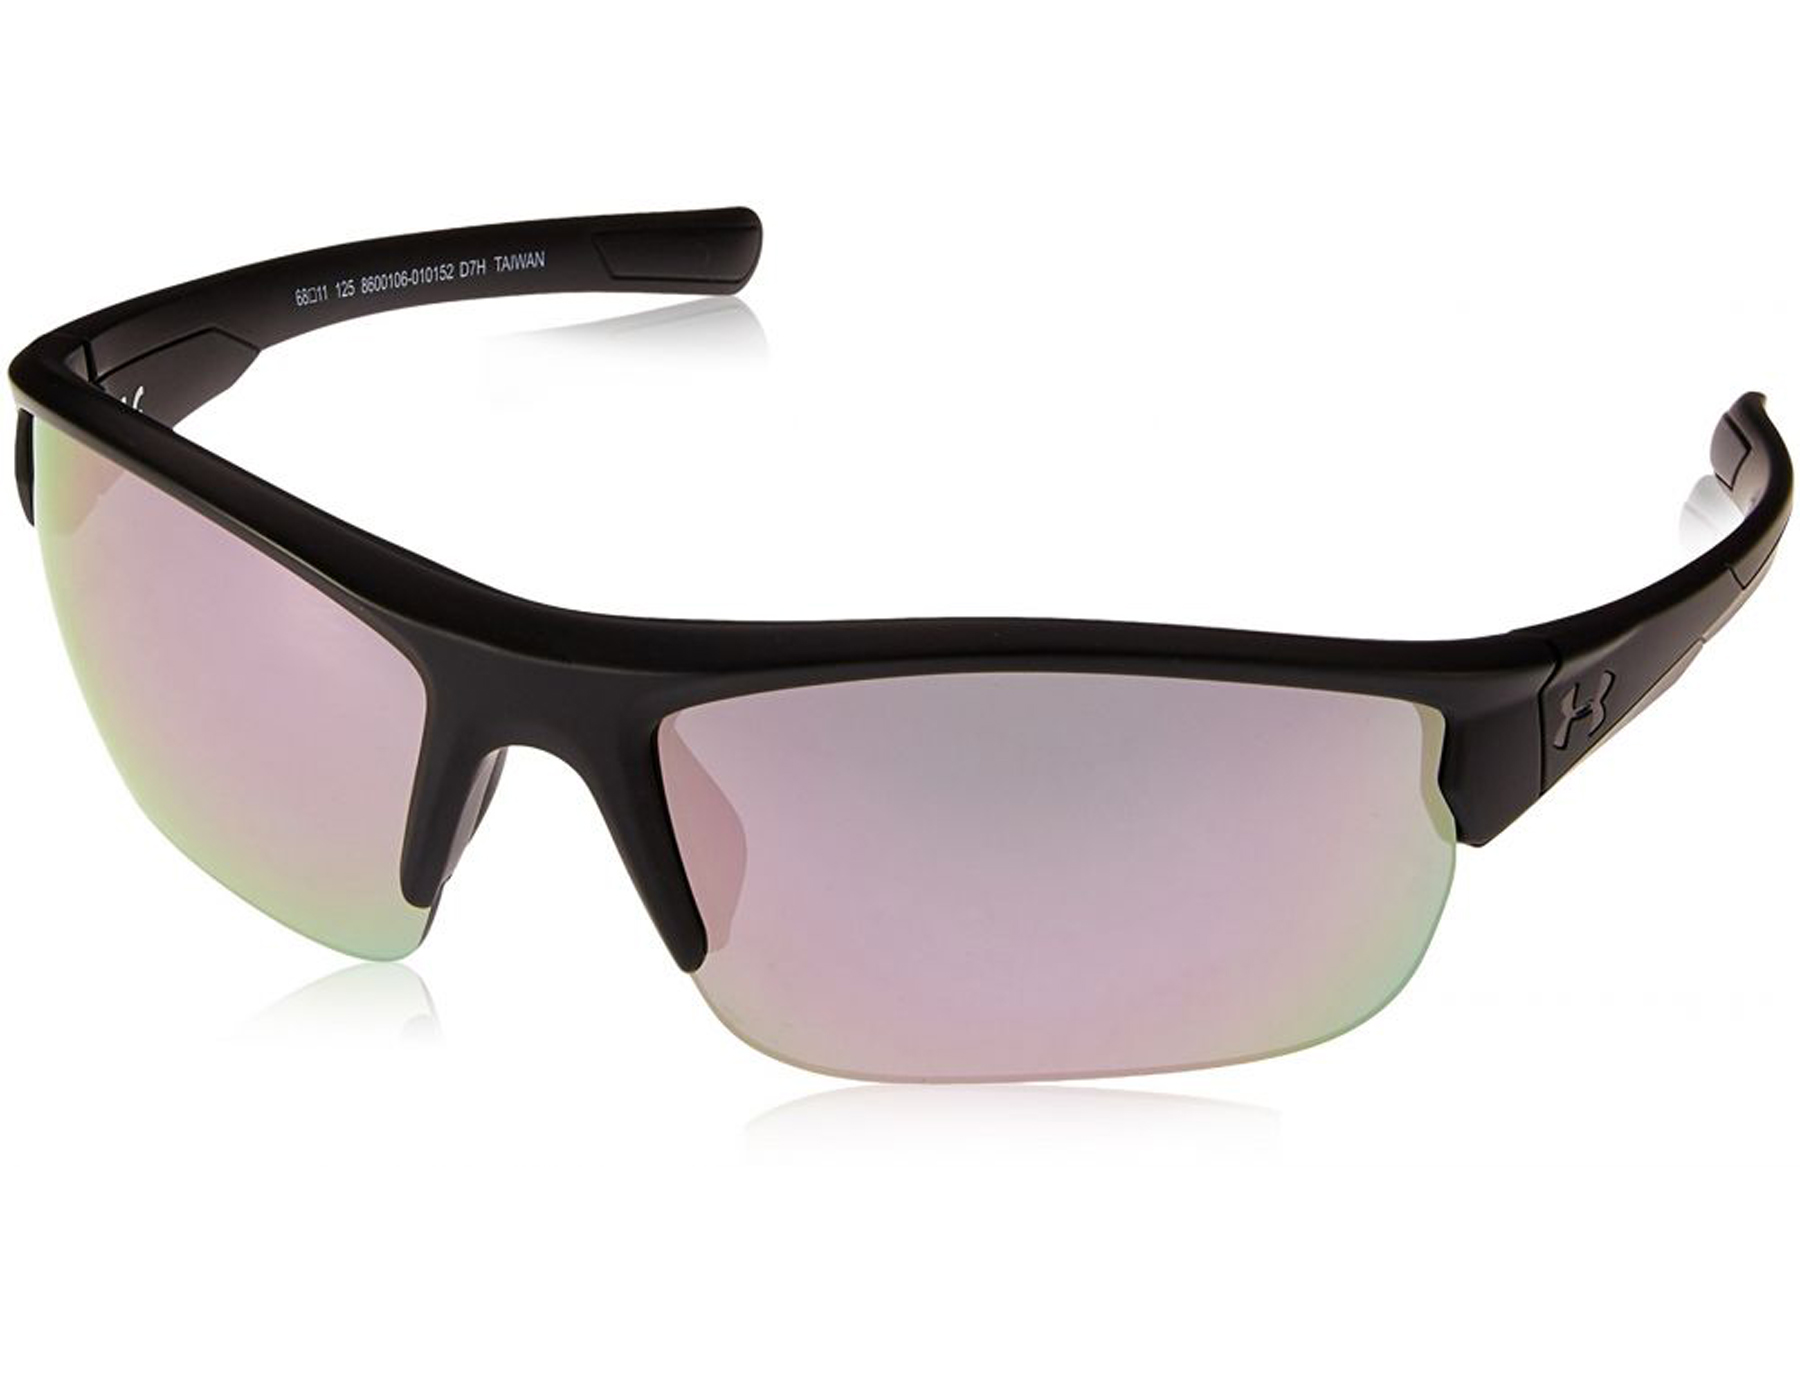 85048b65c442 Details about NEW Under Armour Propel Satin Black / Black Pink 8600106  010152 Sunglasses